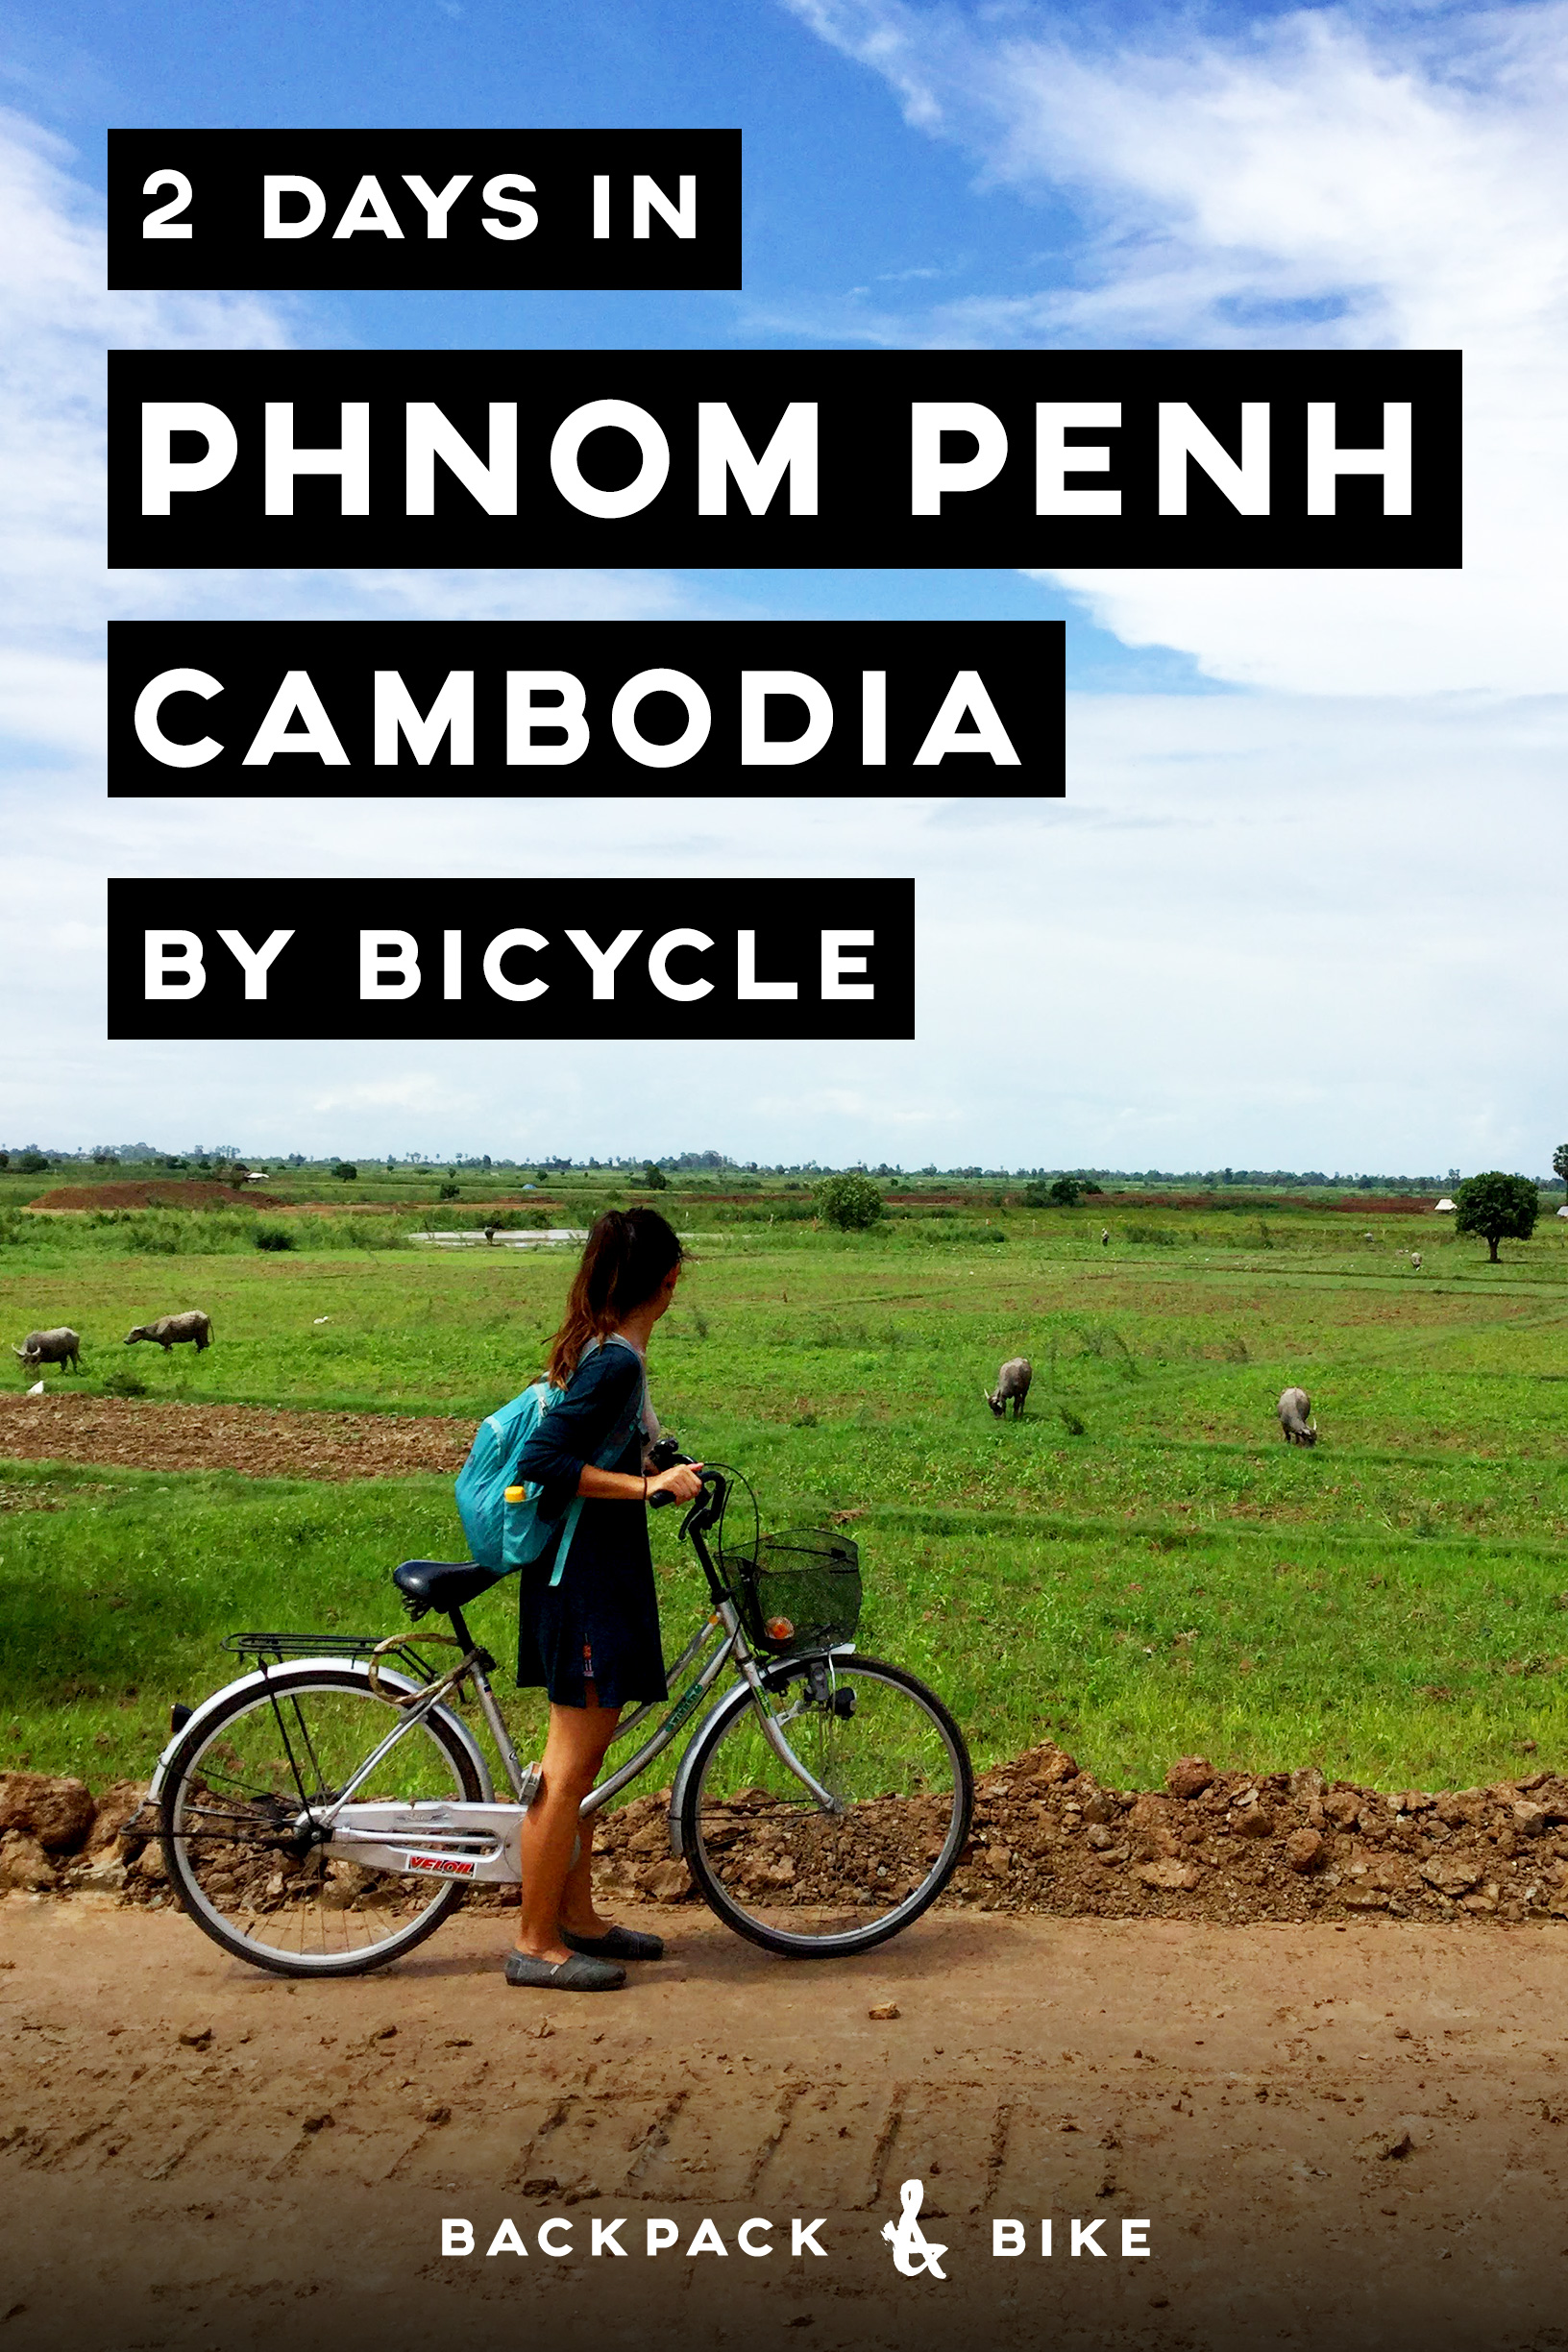 2 days in Phnom Penh Cambodia by Bicycle | Want to get off the beaten path and see a unique side of Phnom Penh, Cambodia? Let us be your guide to navigating Phnom Penh on bicycle.